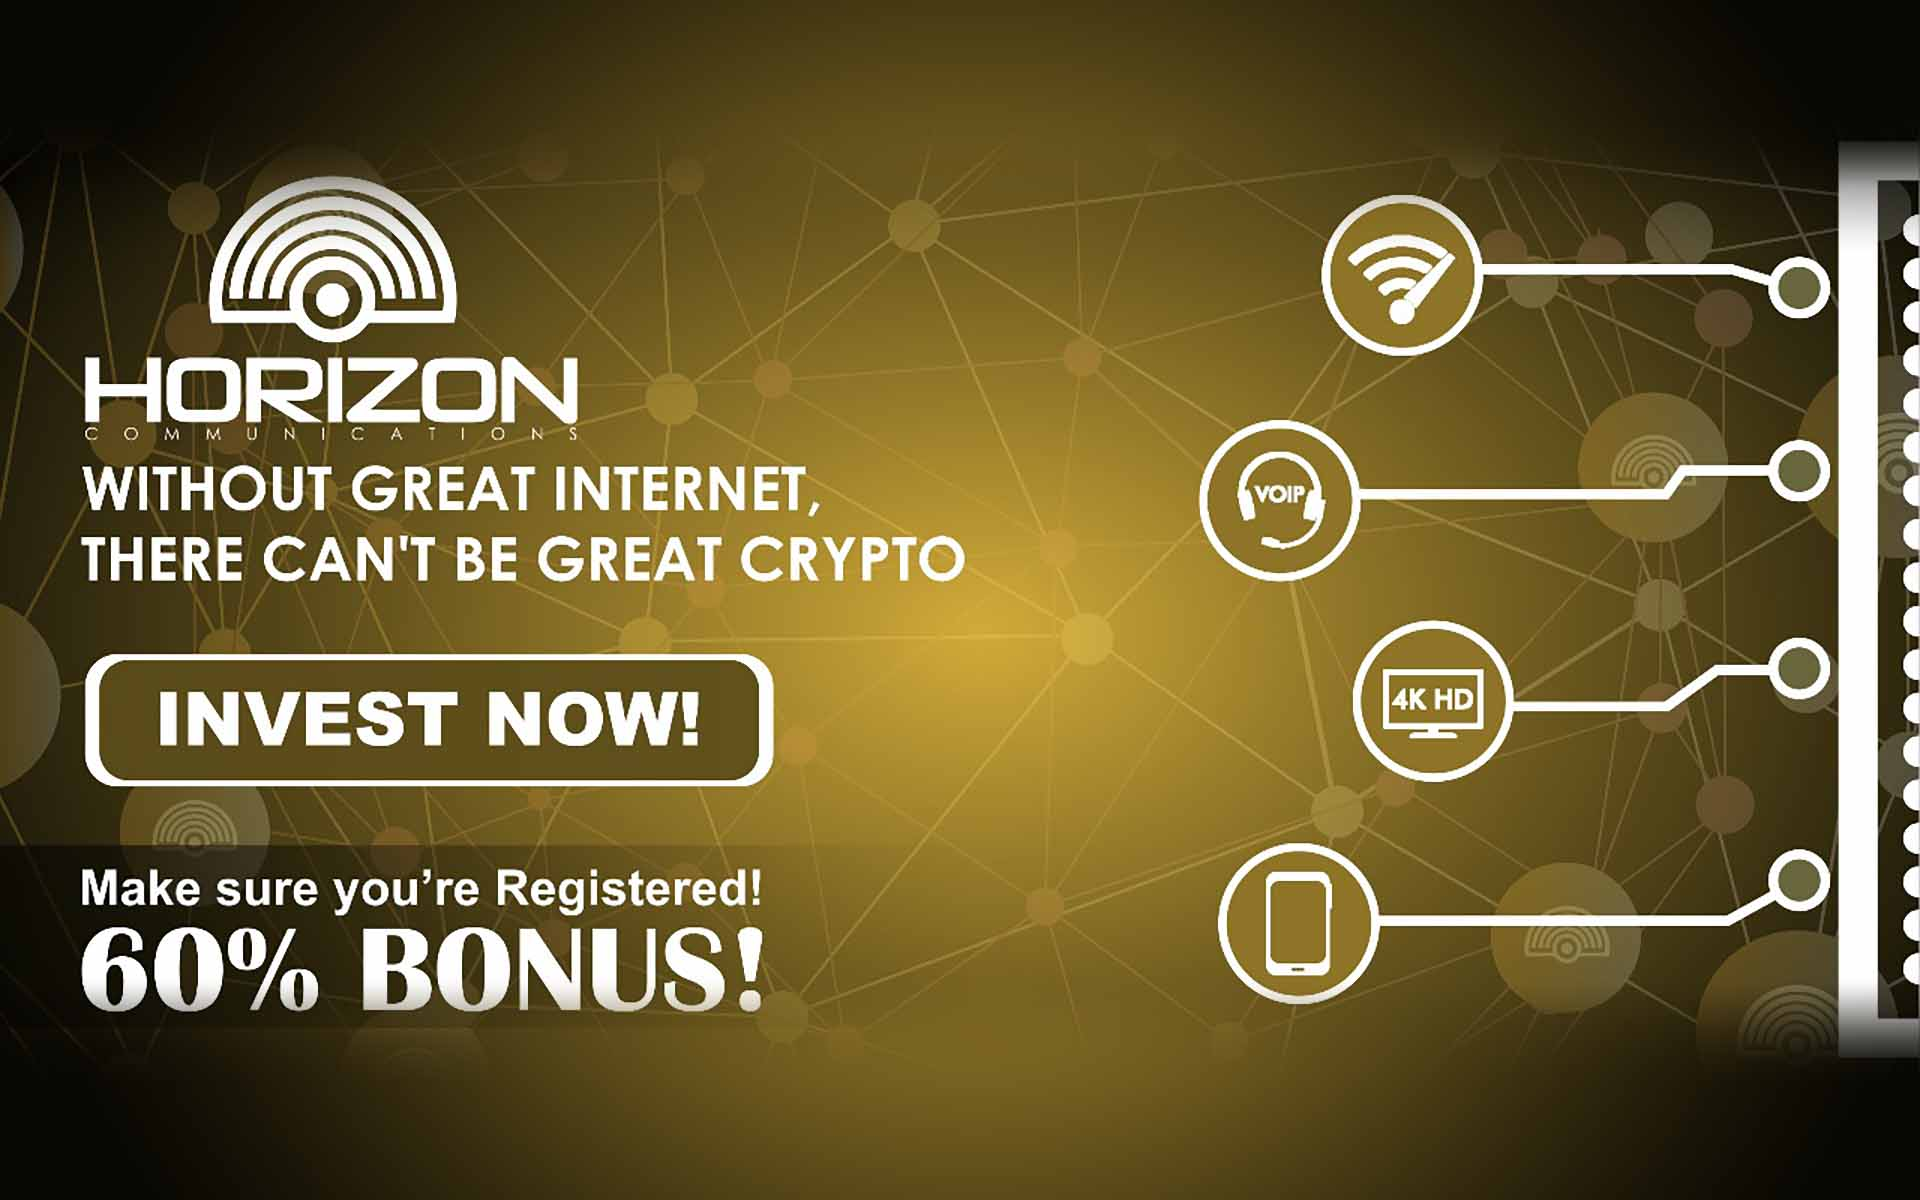 Horizon Launches Public Pre-Sale with 60% Bonus